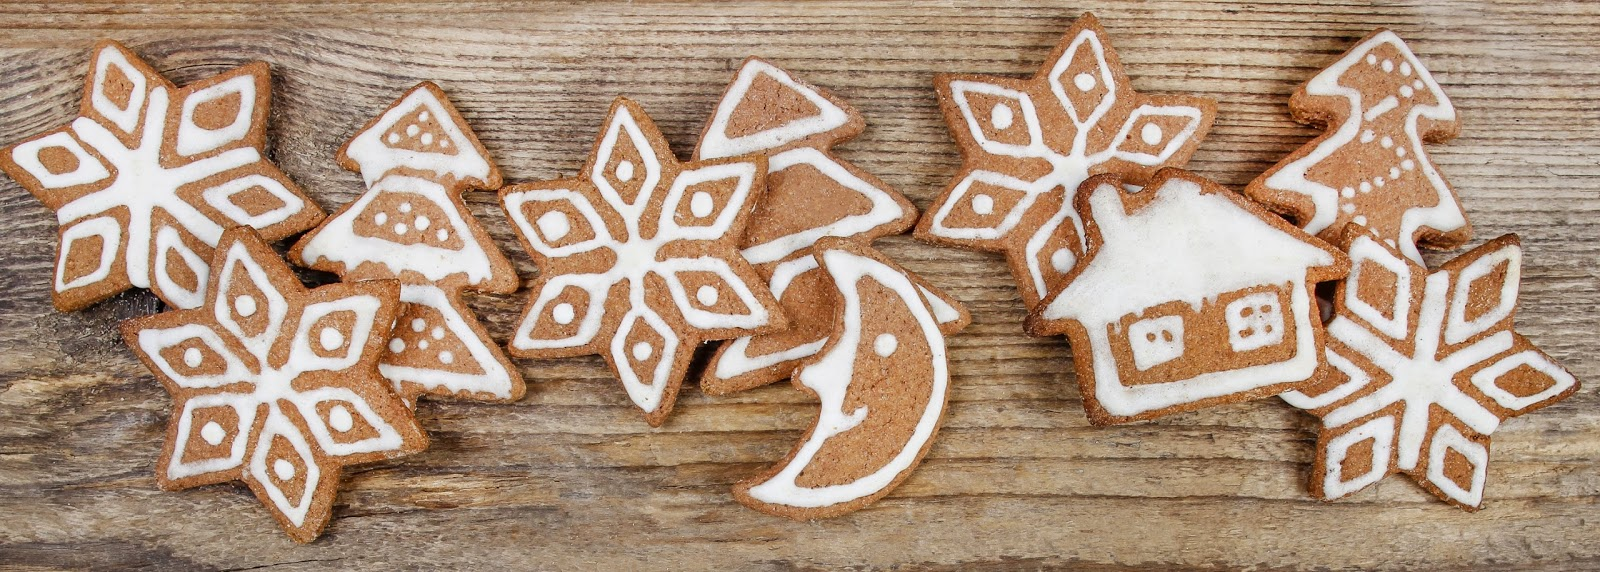 MKEfoodies Holiday Bake Sale Raised $8100 for Cookies for Kids' Cancer